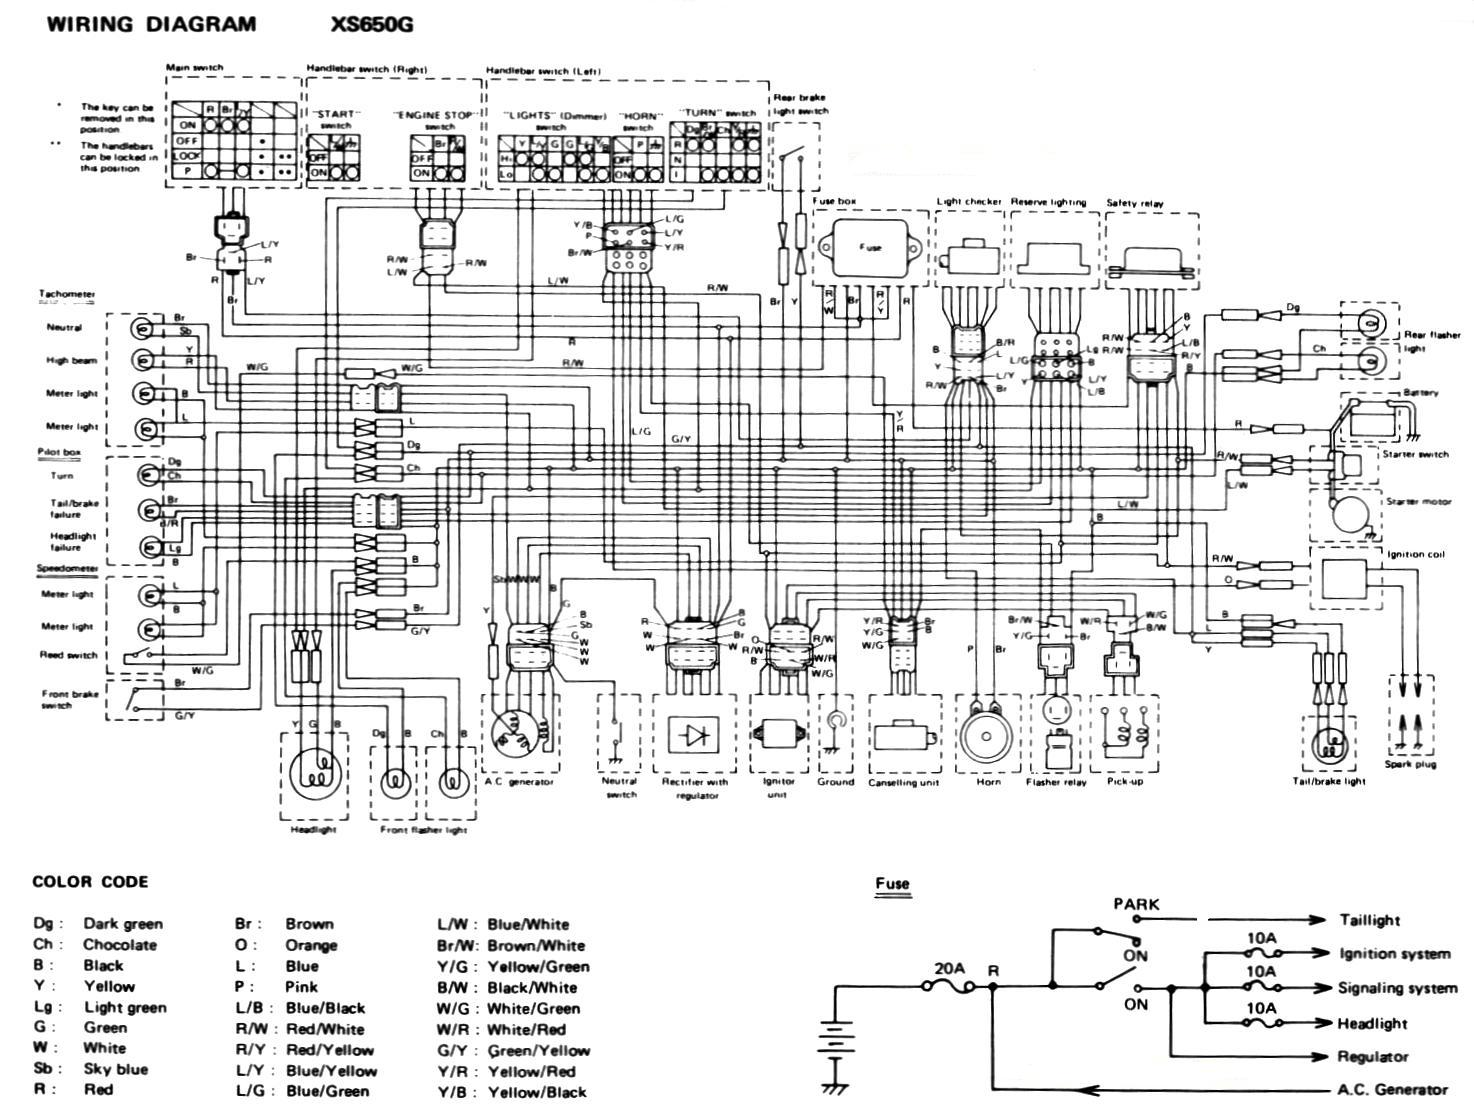 80XS650G wiring diagrams xj550 wiring diagram at bayanpartner.co